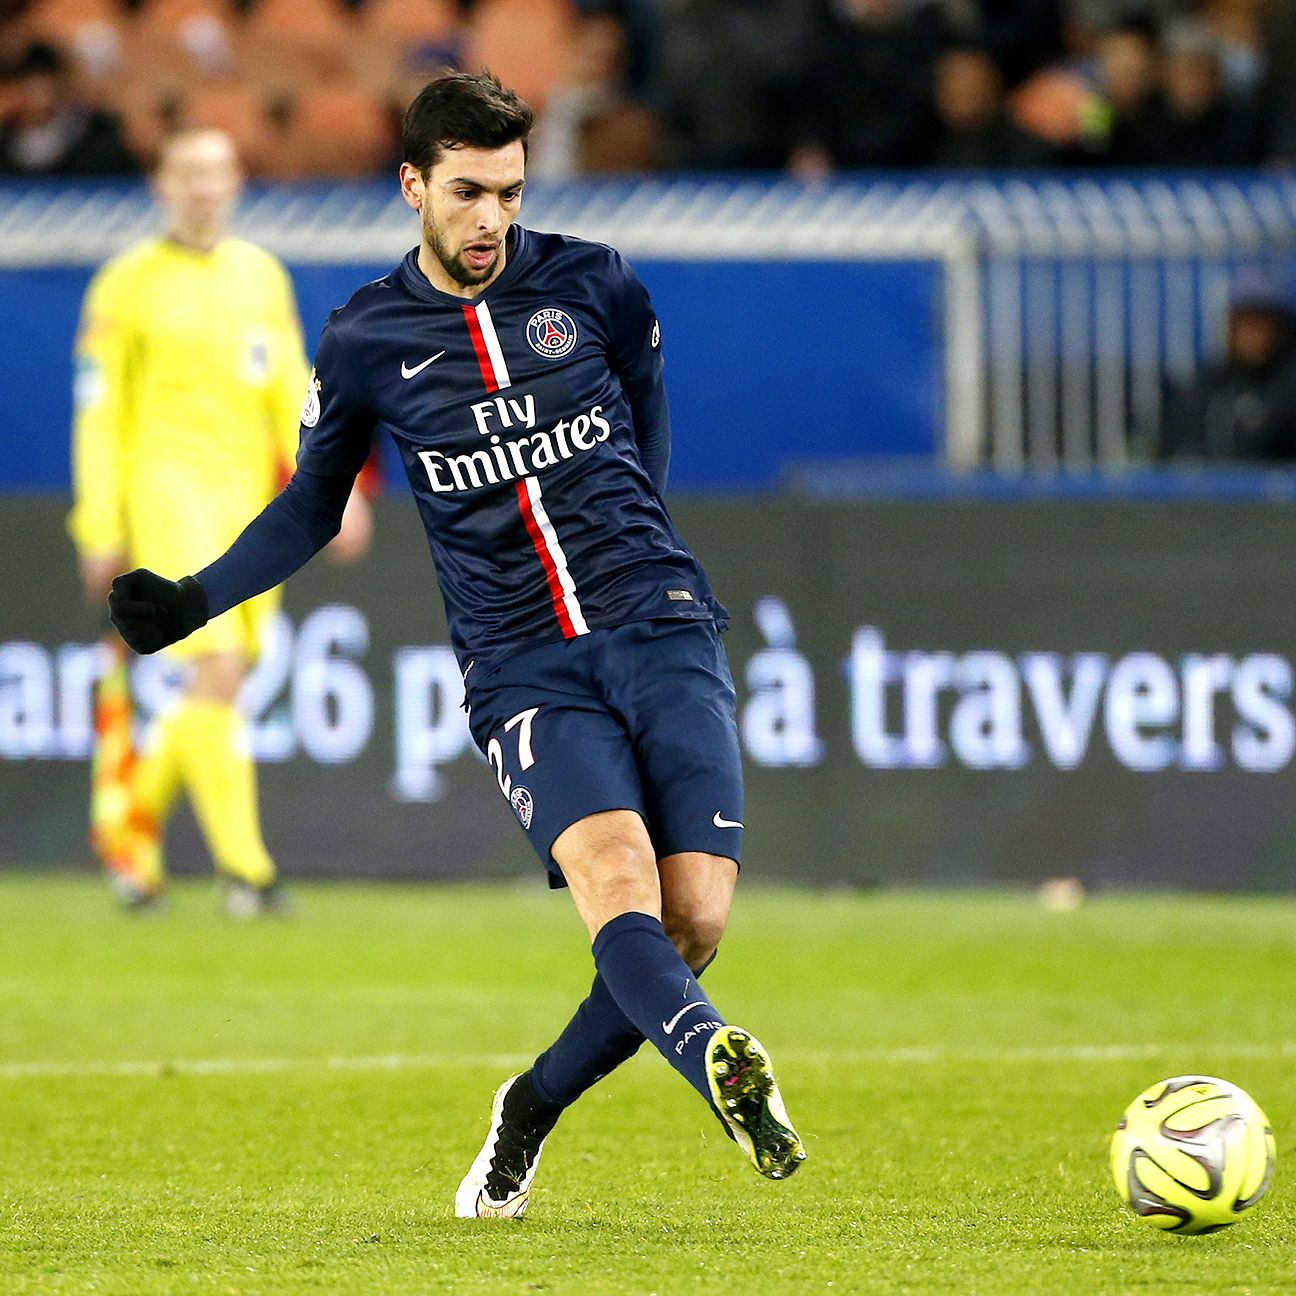 With Javier Pastore unavailable, PSG will need others to step up versus Lyon.